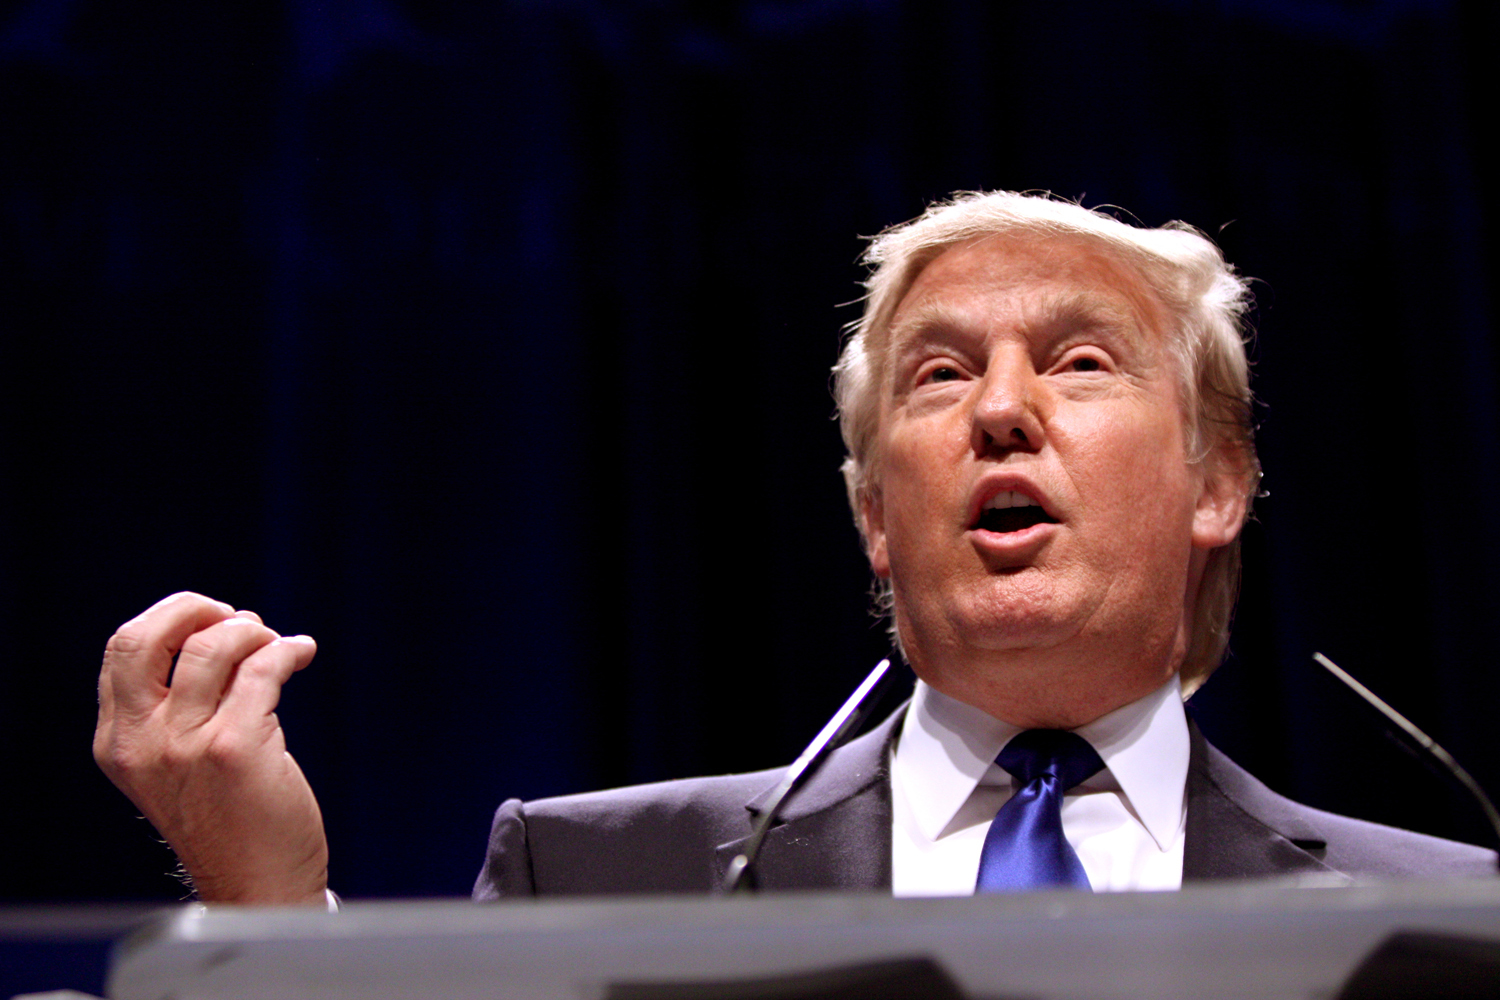 Ben Crosby believes Donald Trump needed to adhere to typical rules for political debates.